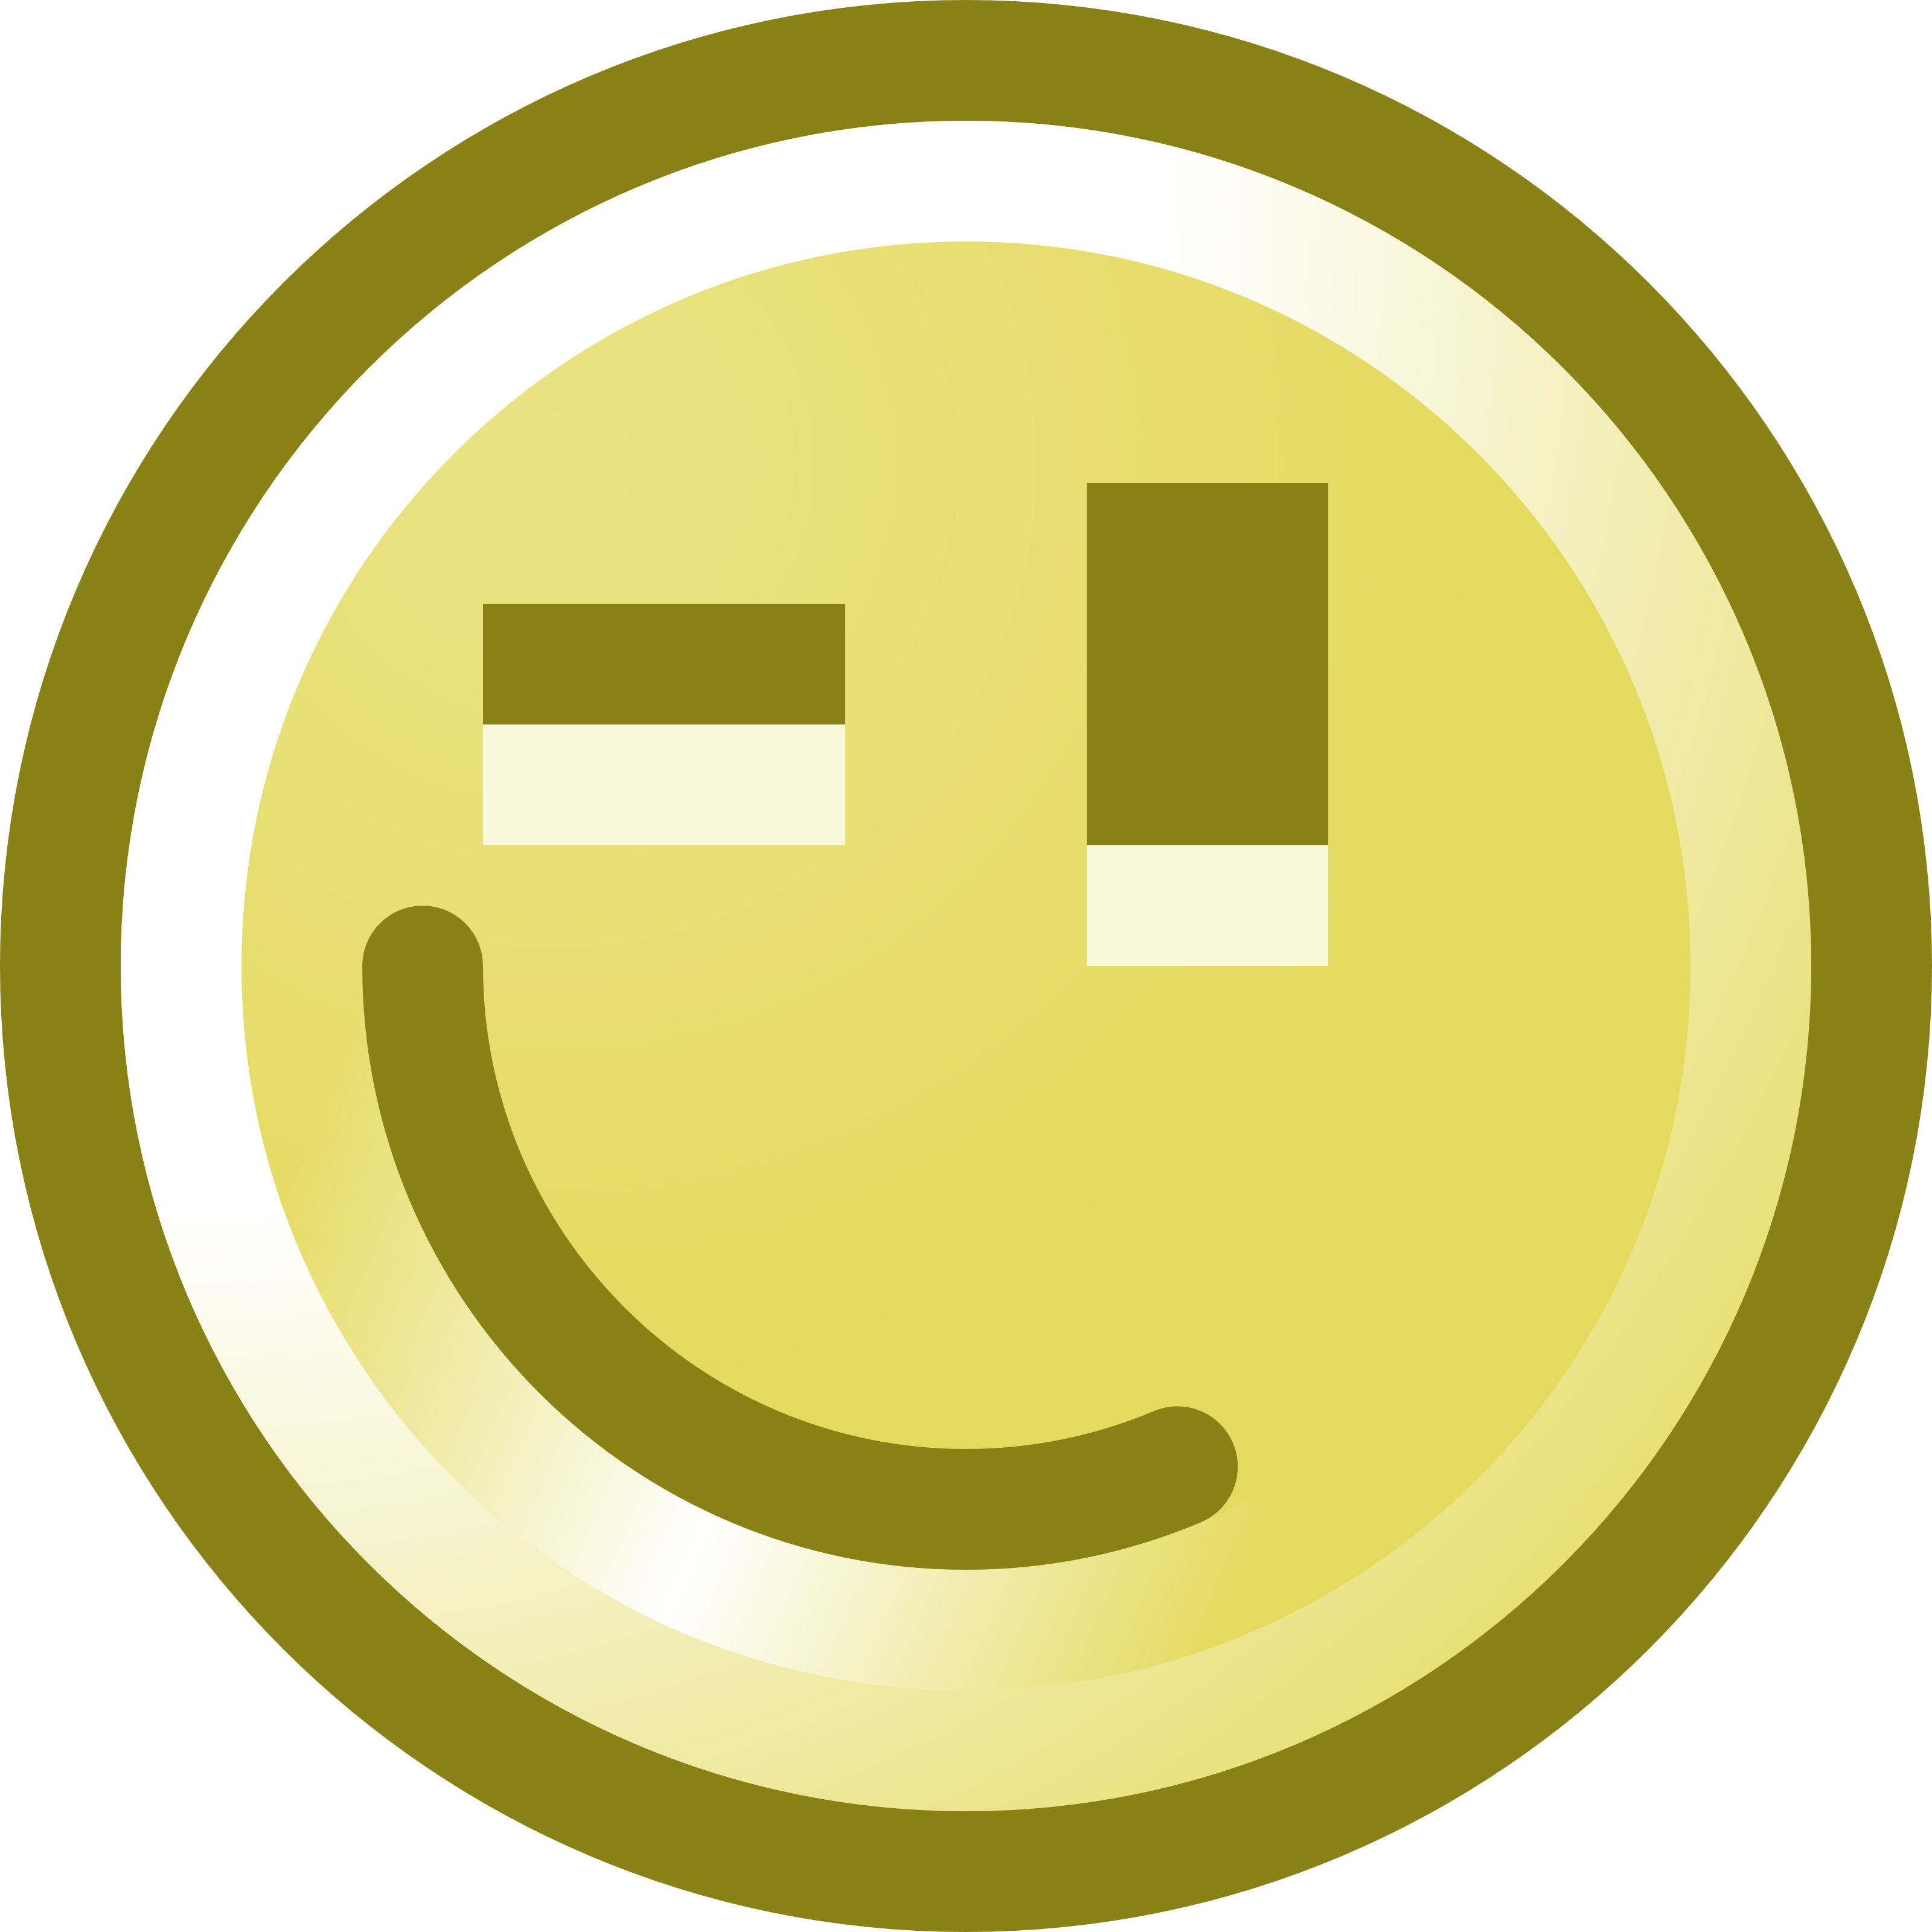 3200x3200 Smiley Face Wink Thumbs Up Free Clipart Images Image